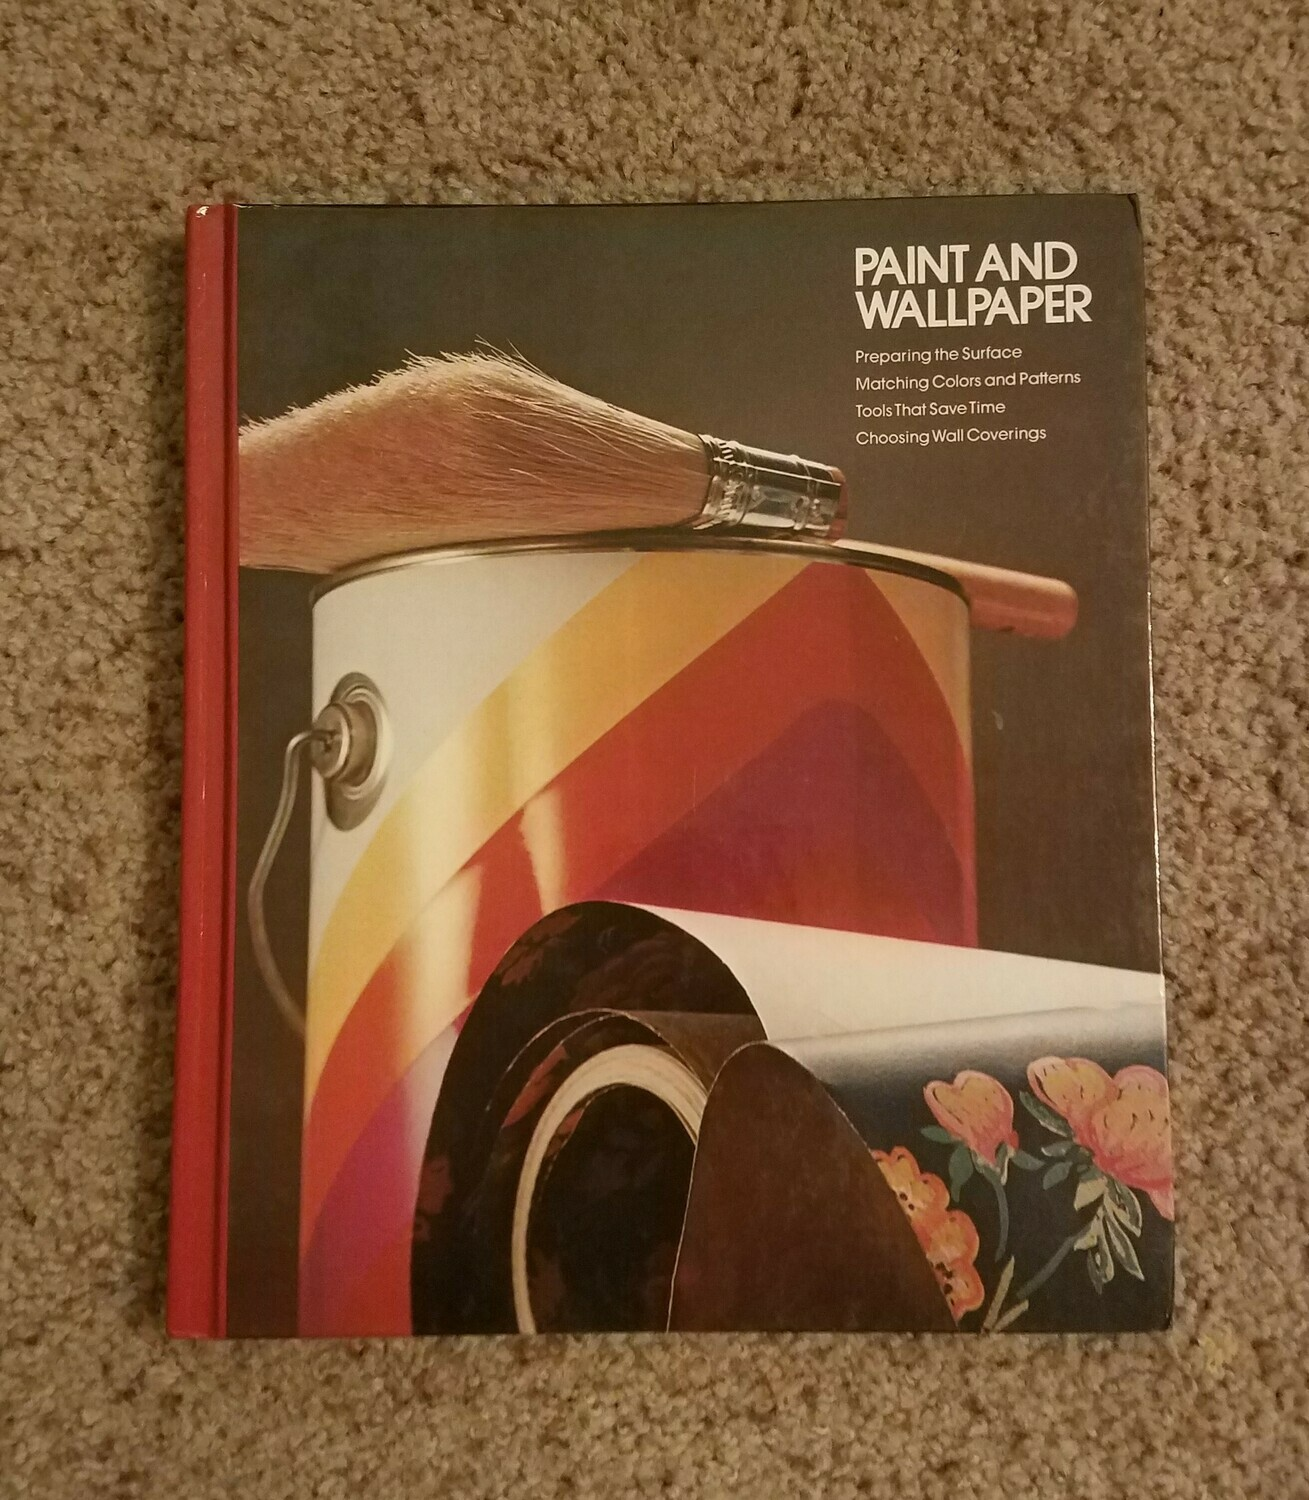 Paint and Wallpaper by Editors of Time-Life Books